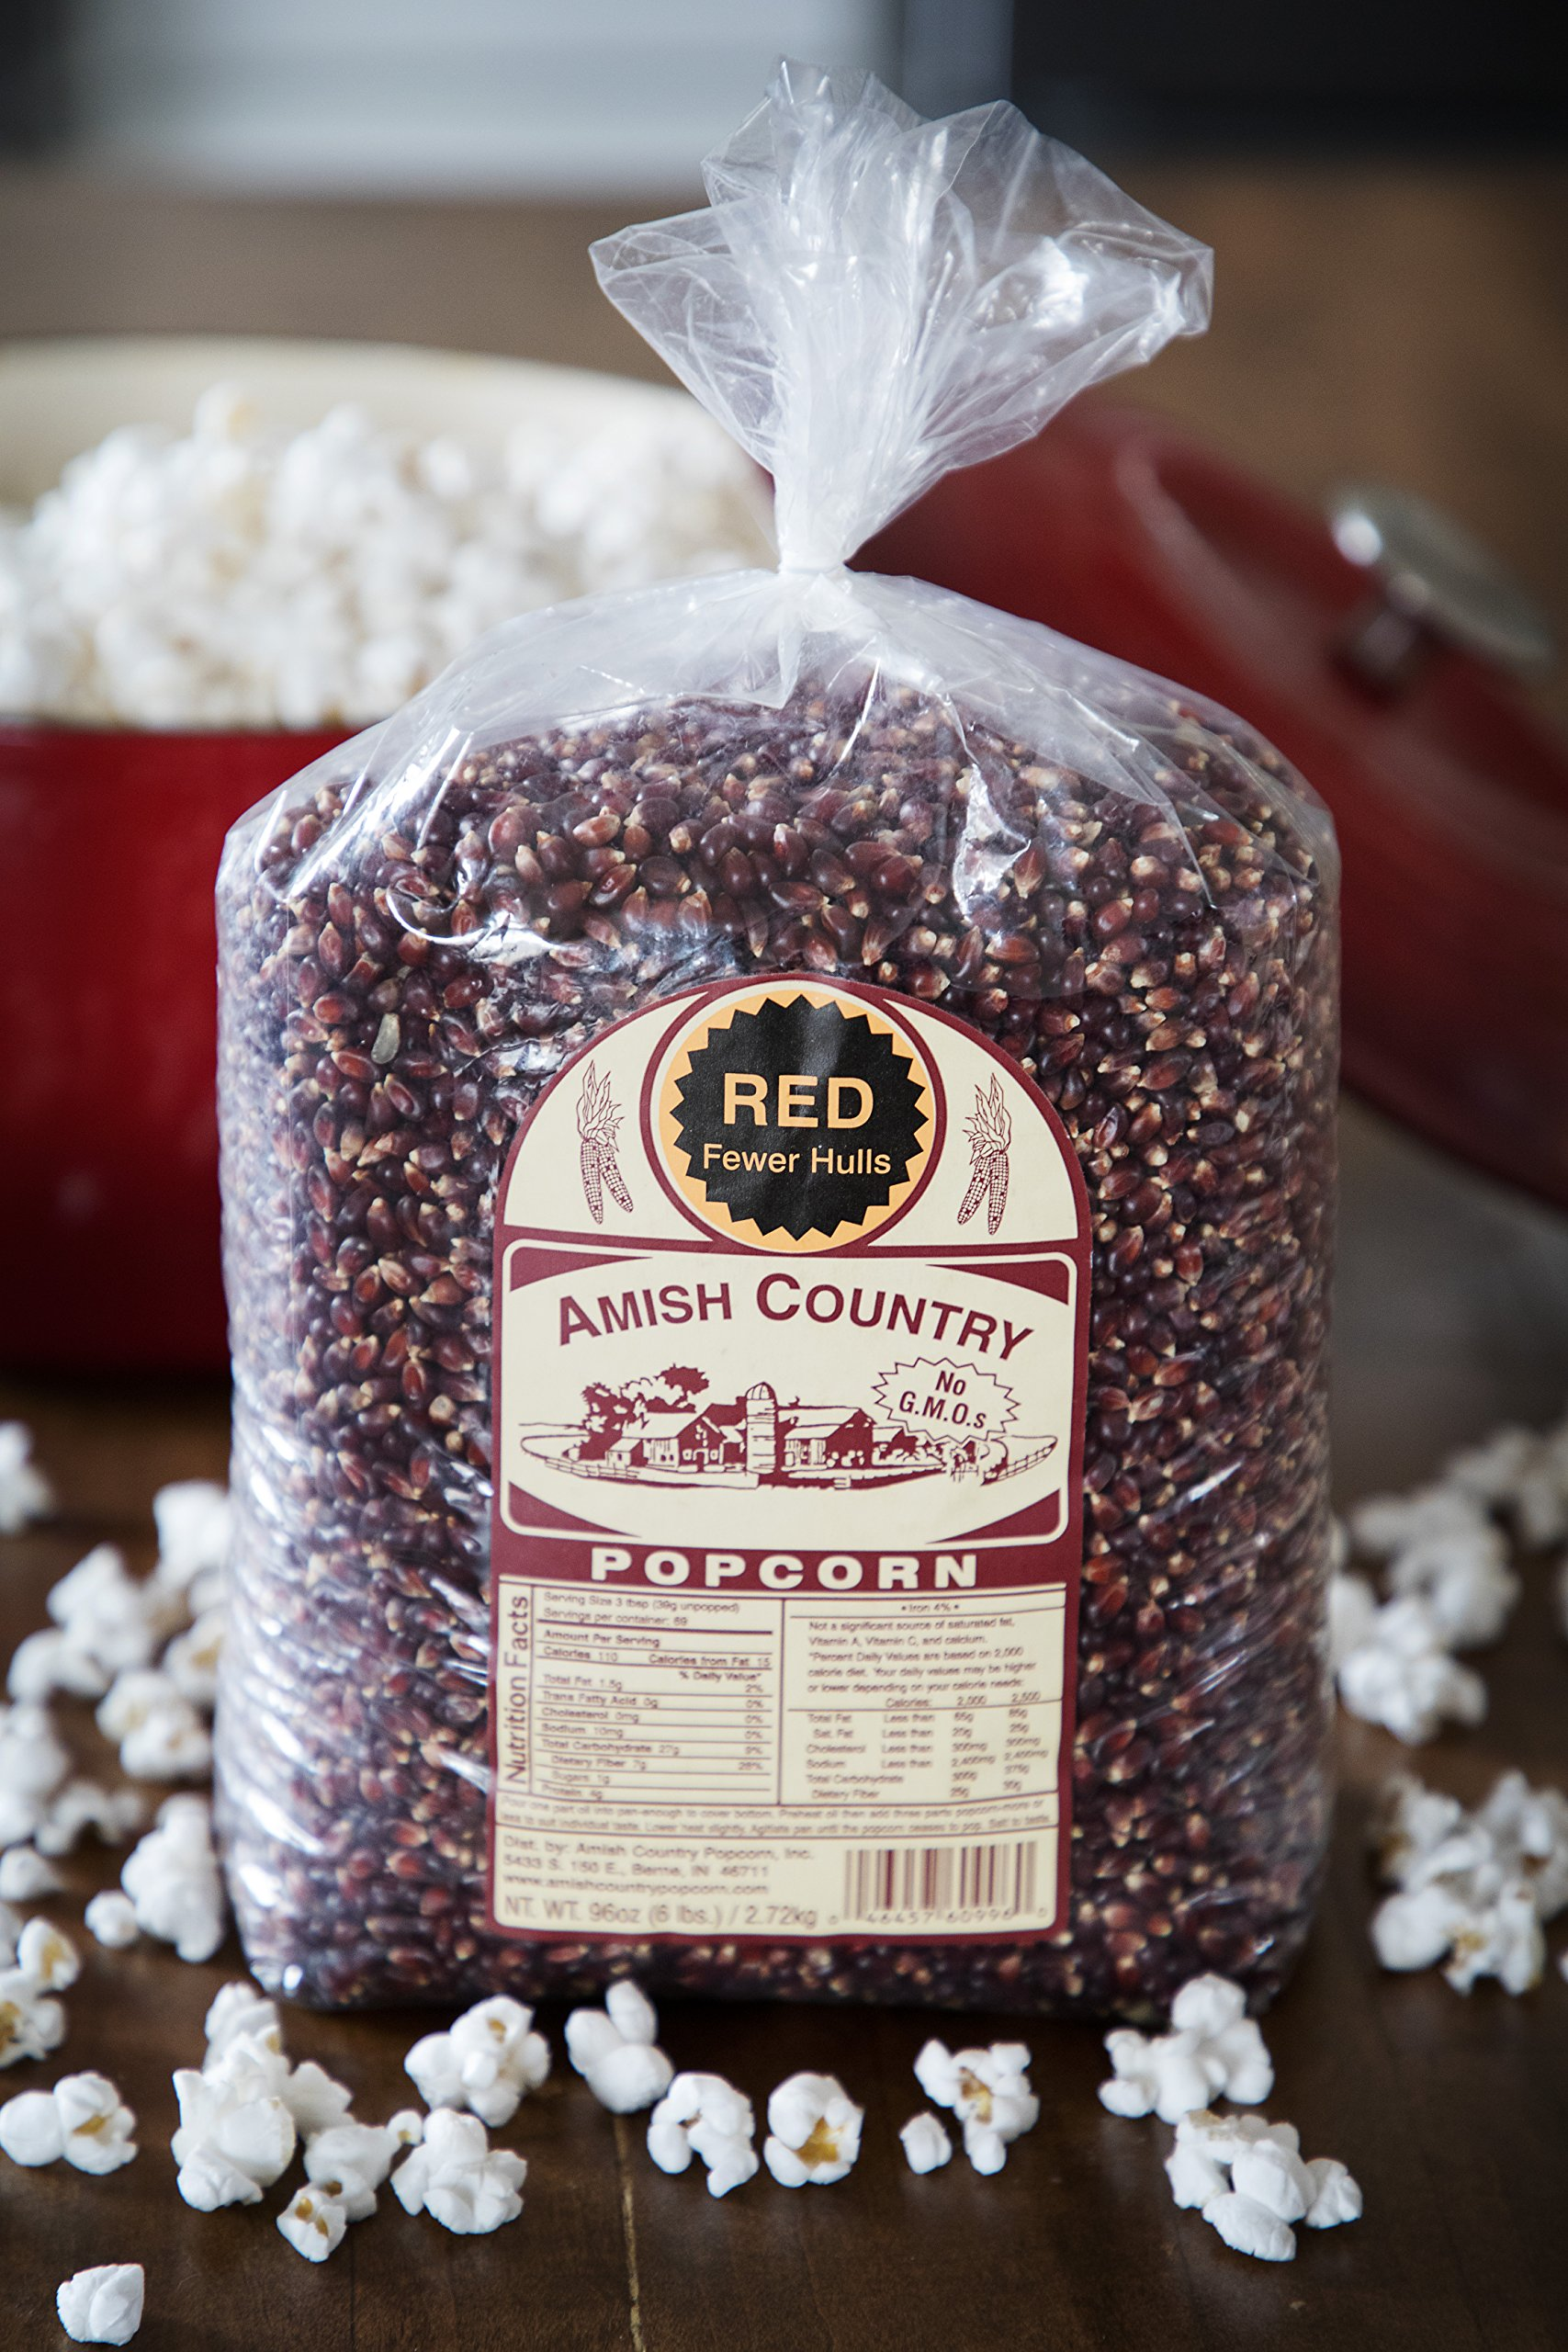 Amish Country Popcorn - Red Popcorn (6 Pound Bag) - Old Fashioned, Non GMO, and Gluten Free - with Recipe Guide by Amish Country Popcorn (Image #5)